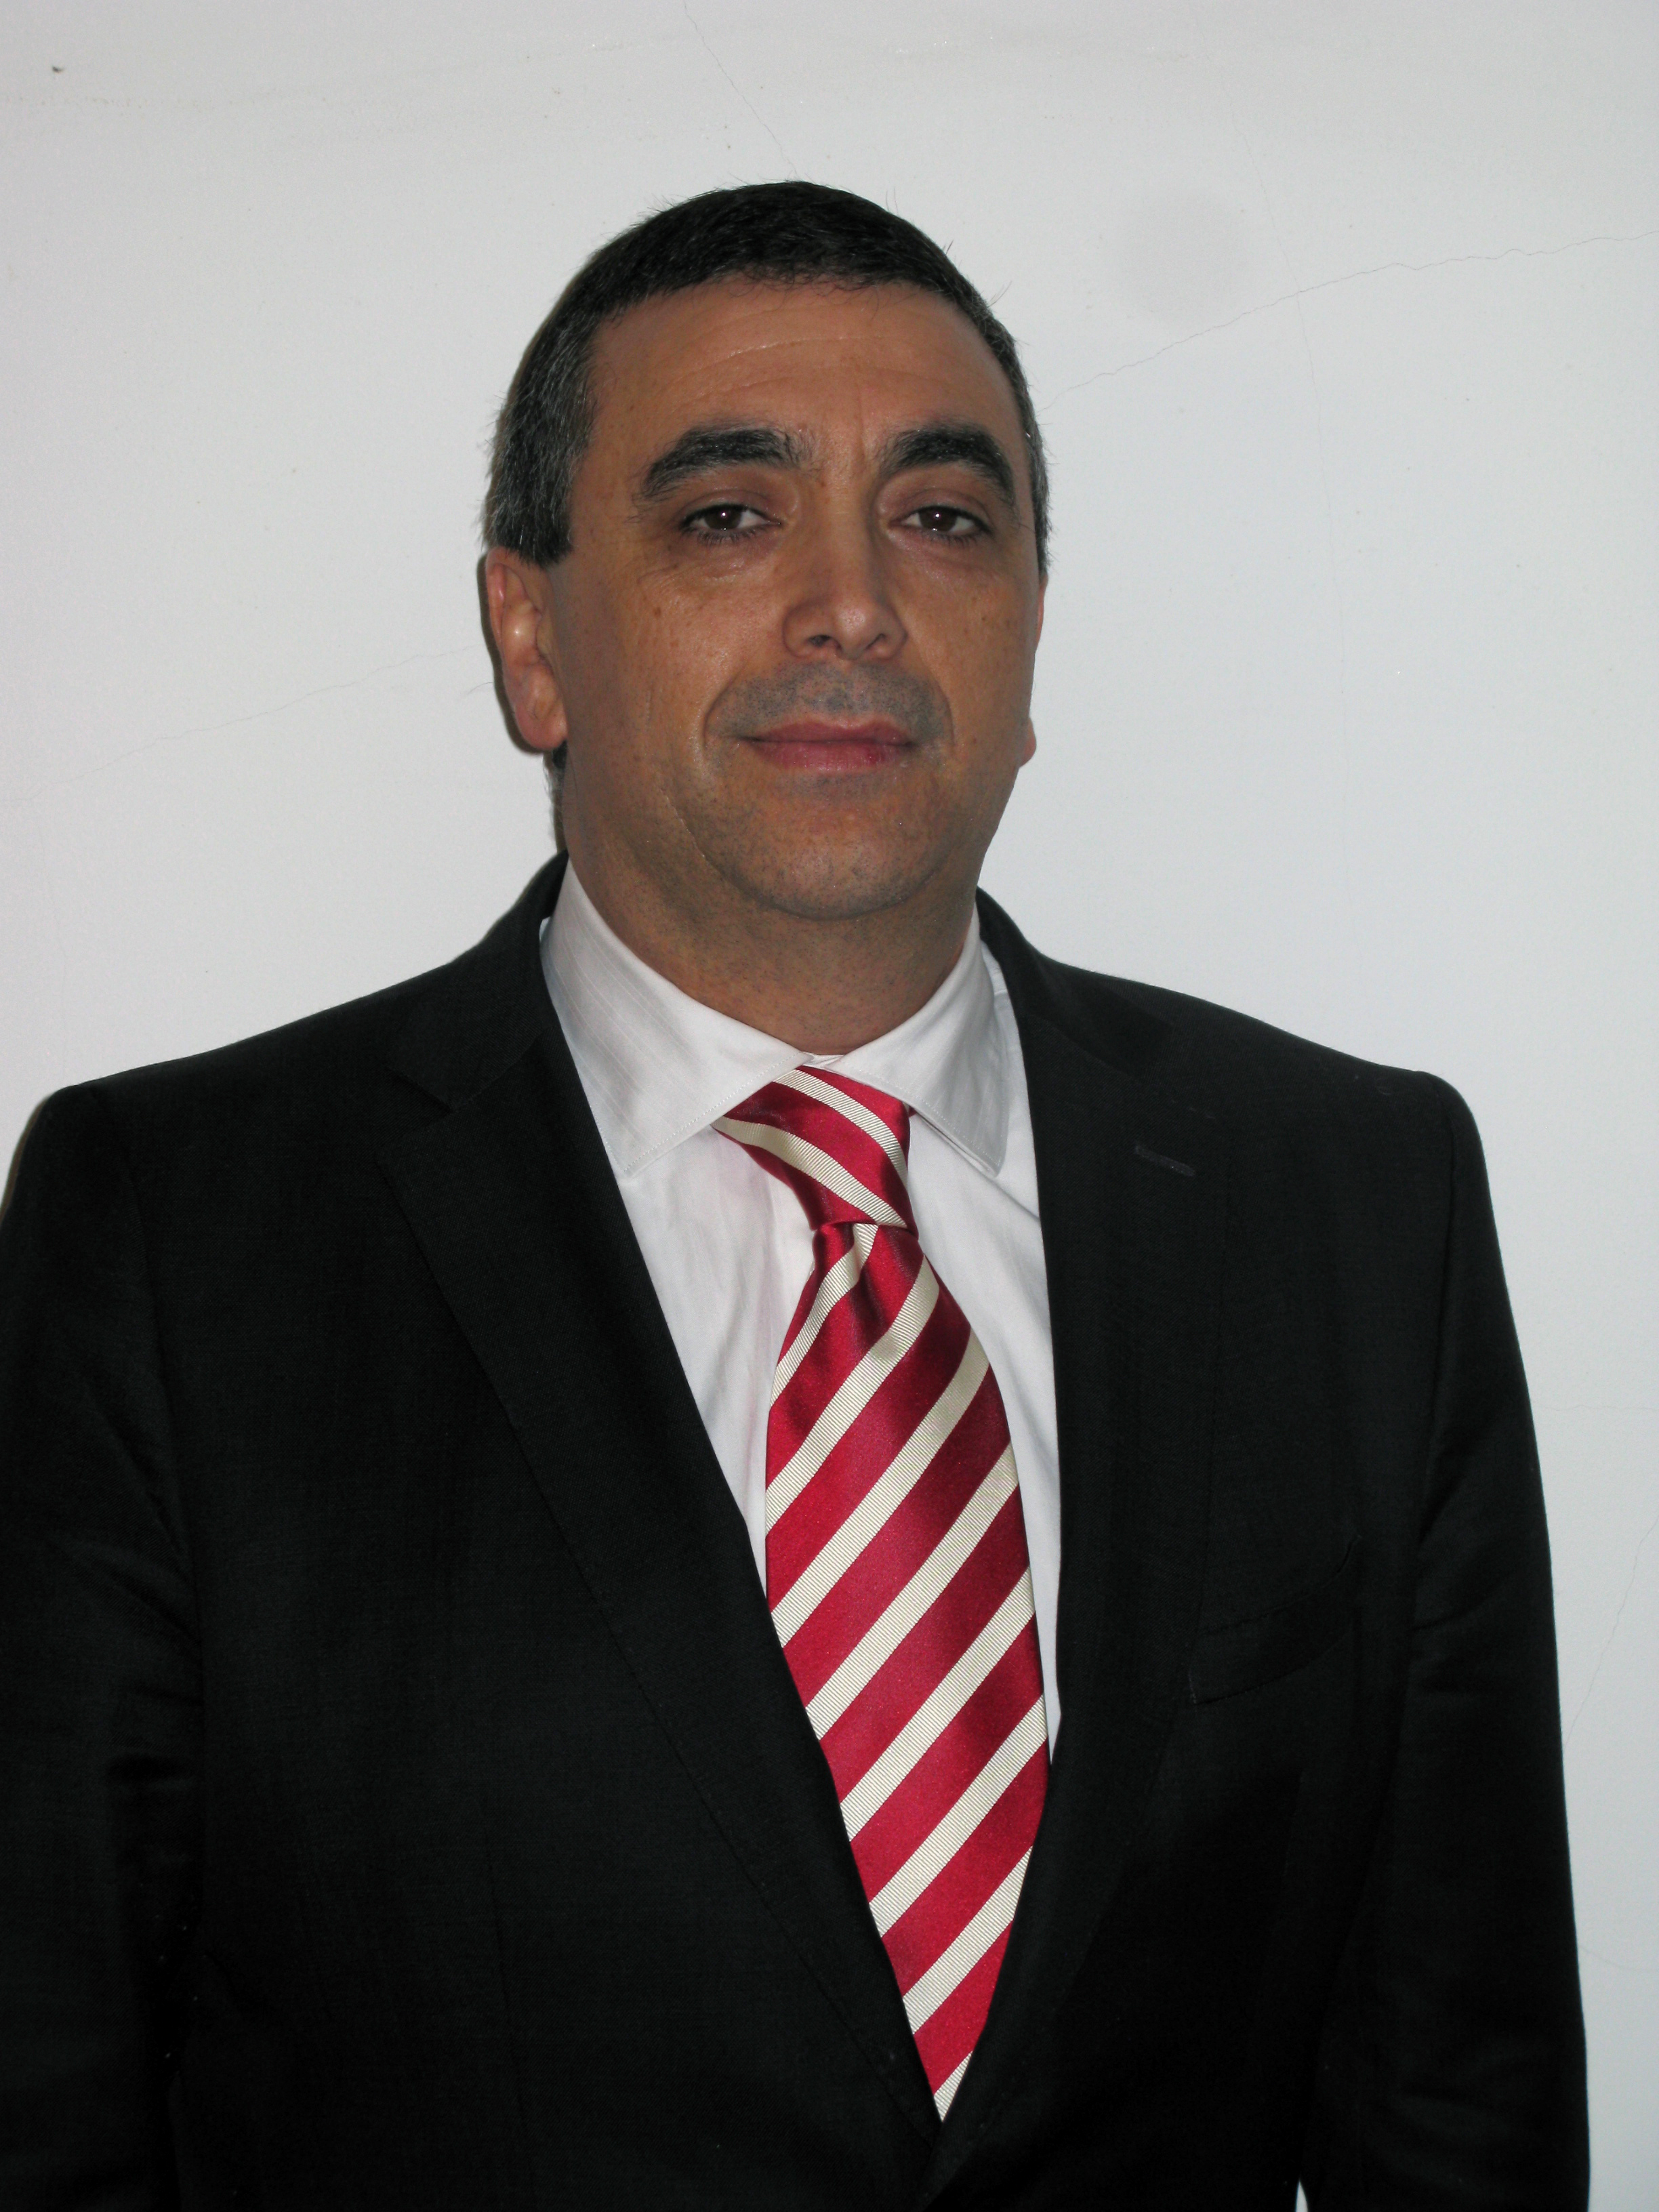 EFRS president, Prof. Graciano Paulo from Coimbra, Portugal